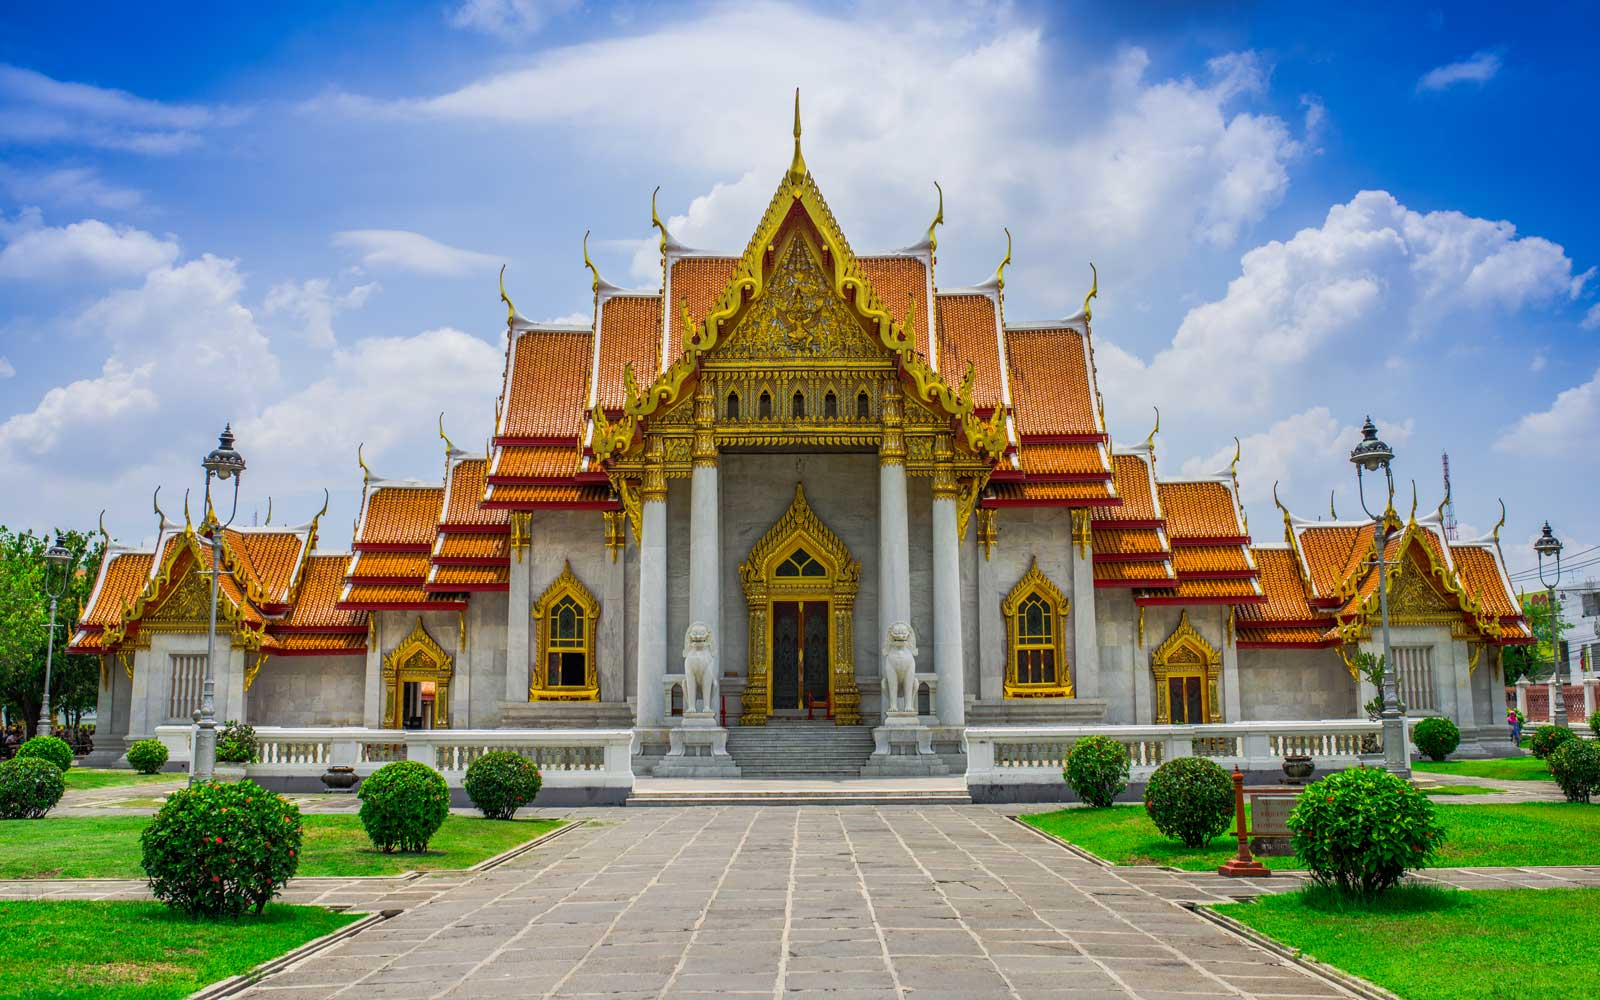 The Marble Temple in Bankgok, Thailand. (Wat Benchamabophit)